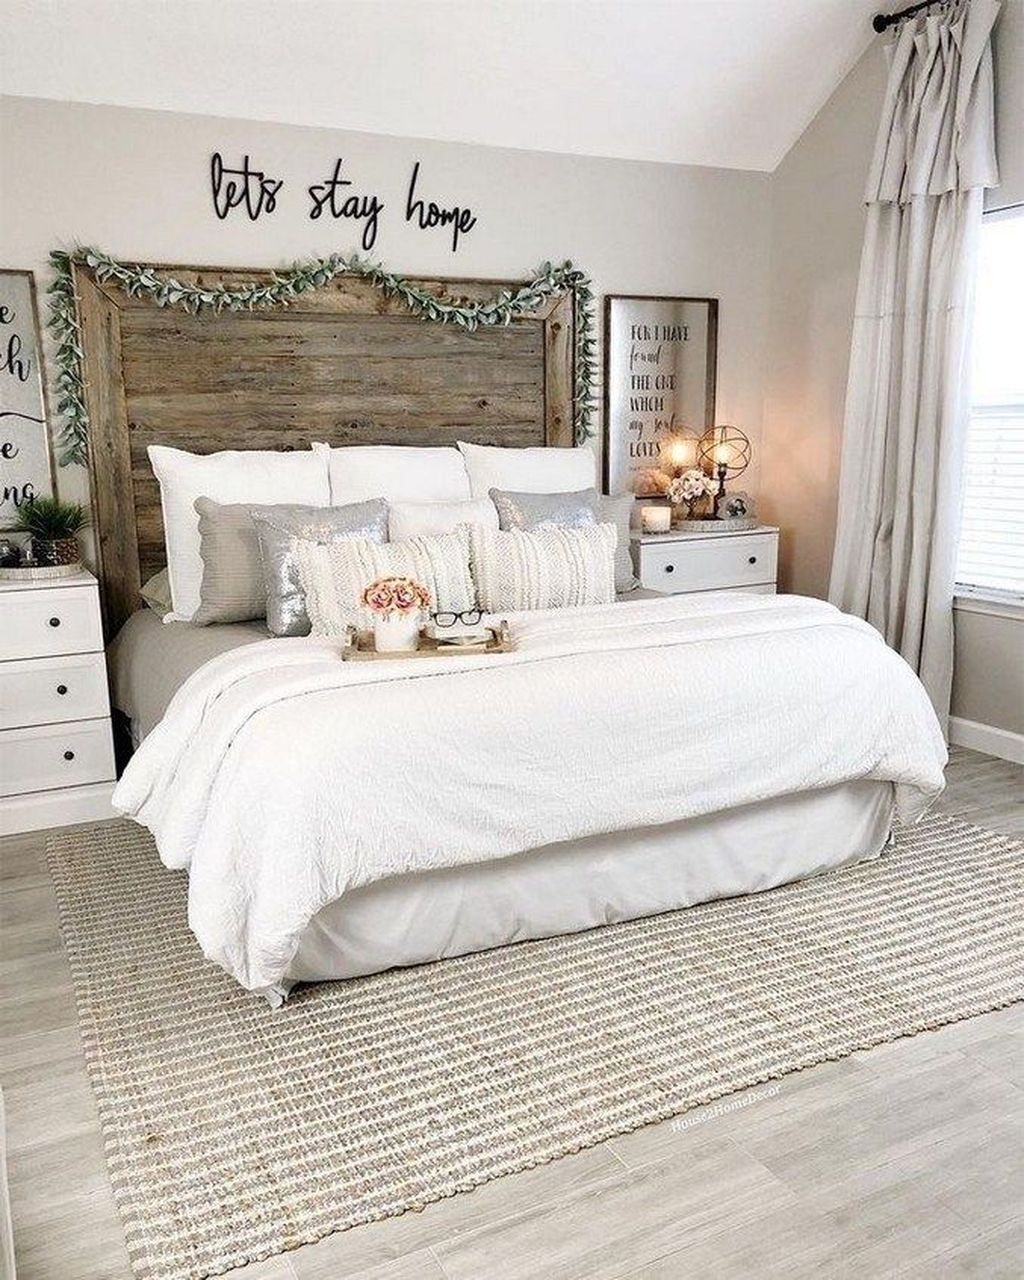 30+ Gorgeous Farmhouse Bedroom Remodel Ideas On A Budget - LOVAHOMY